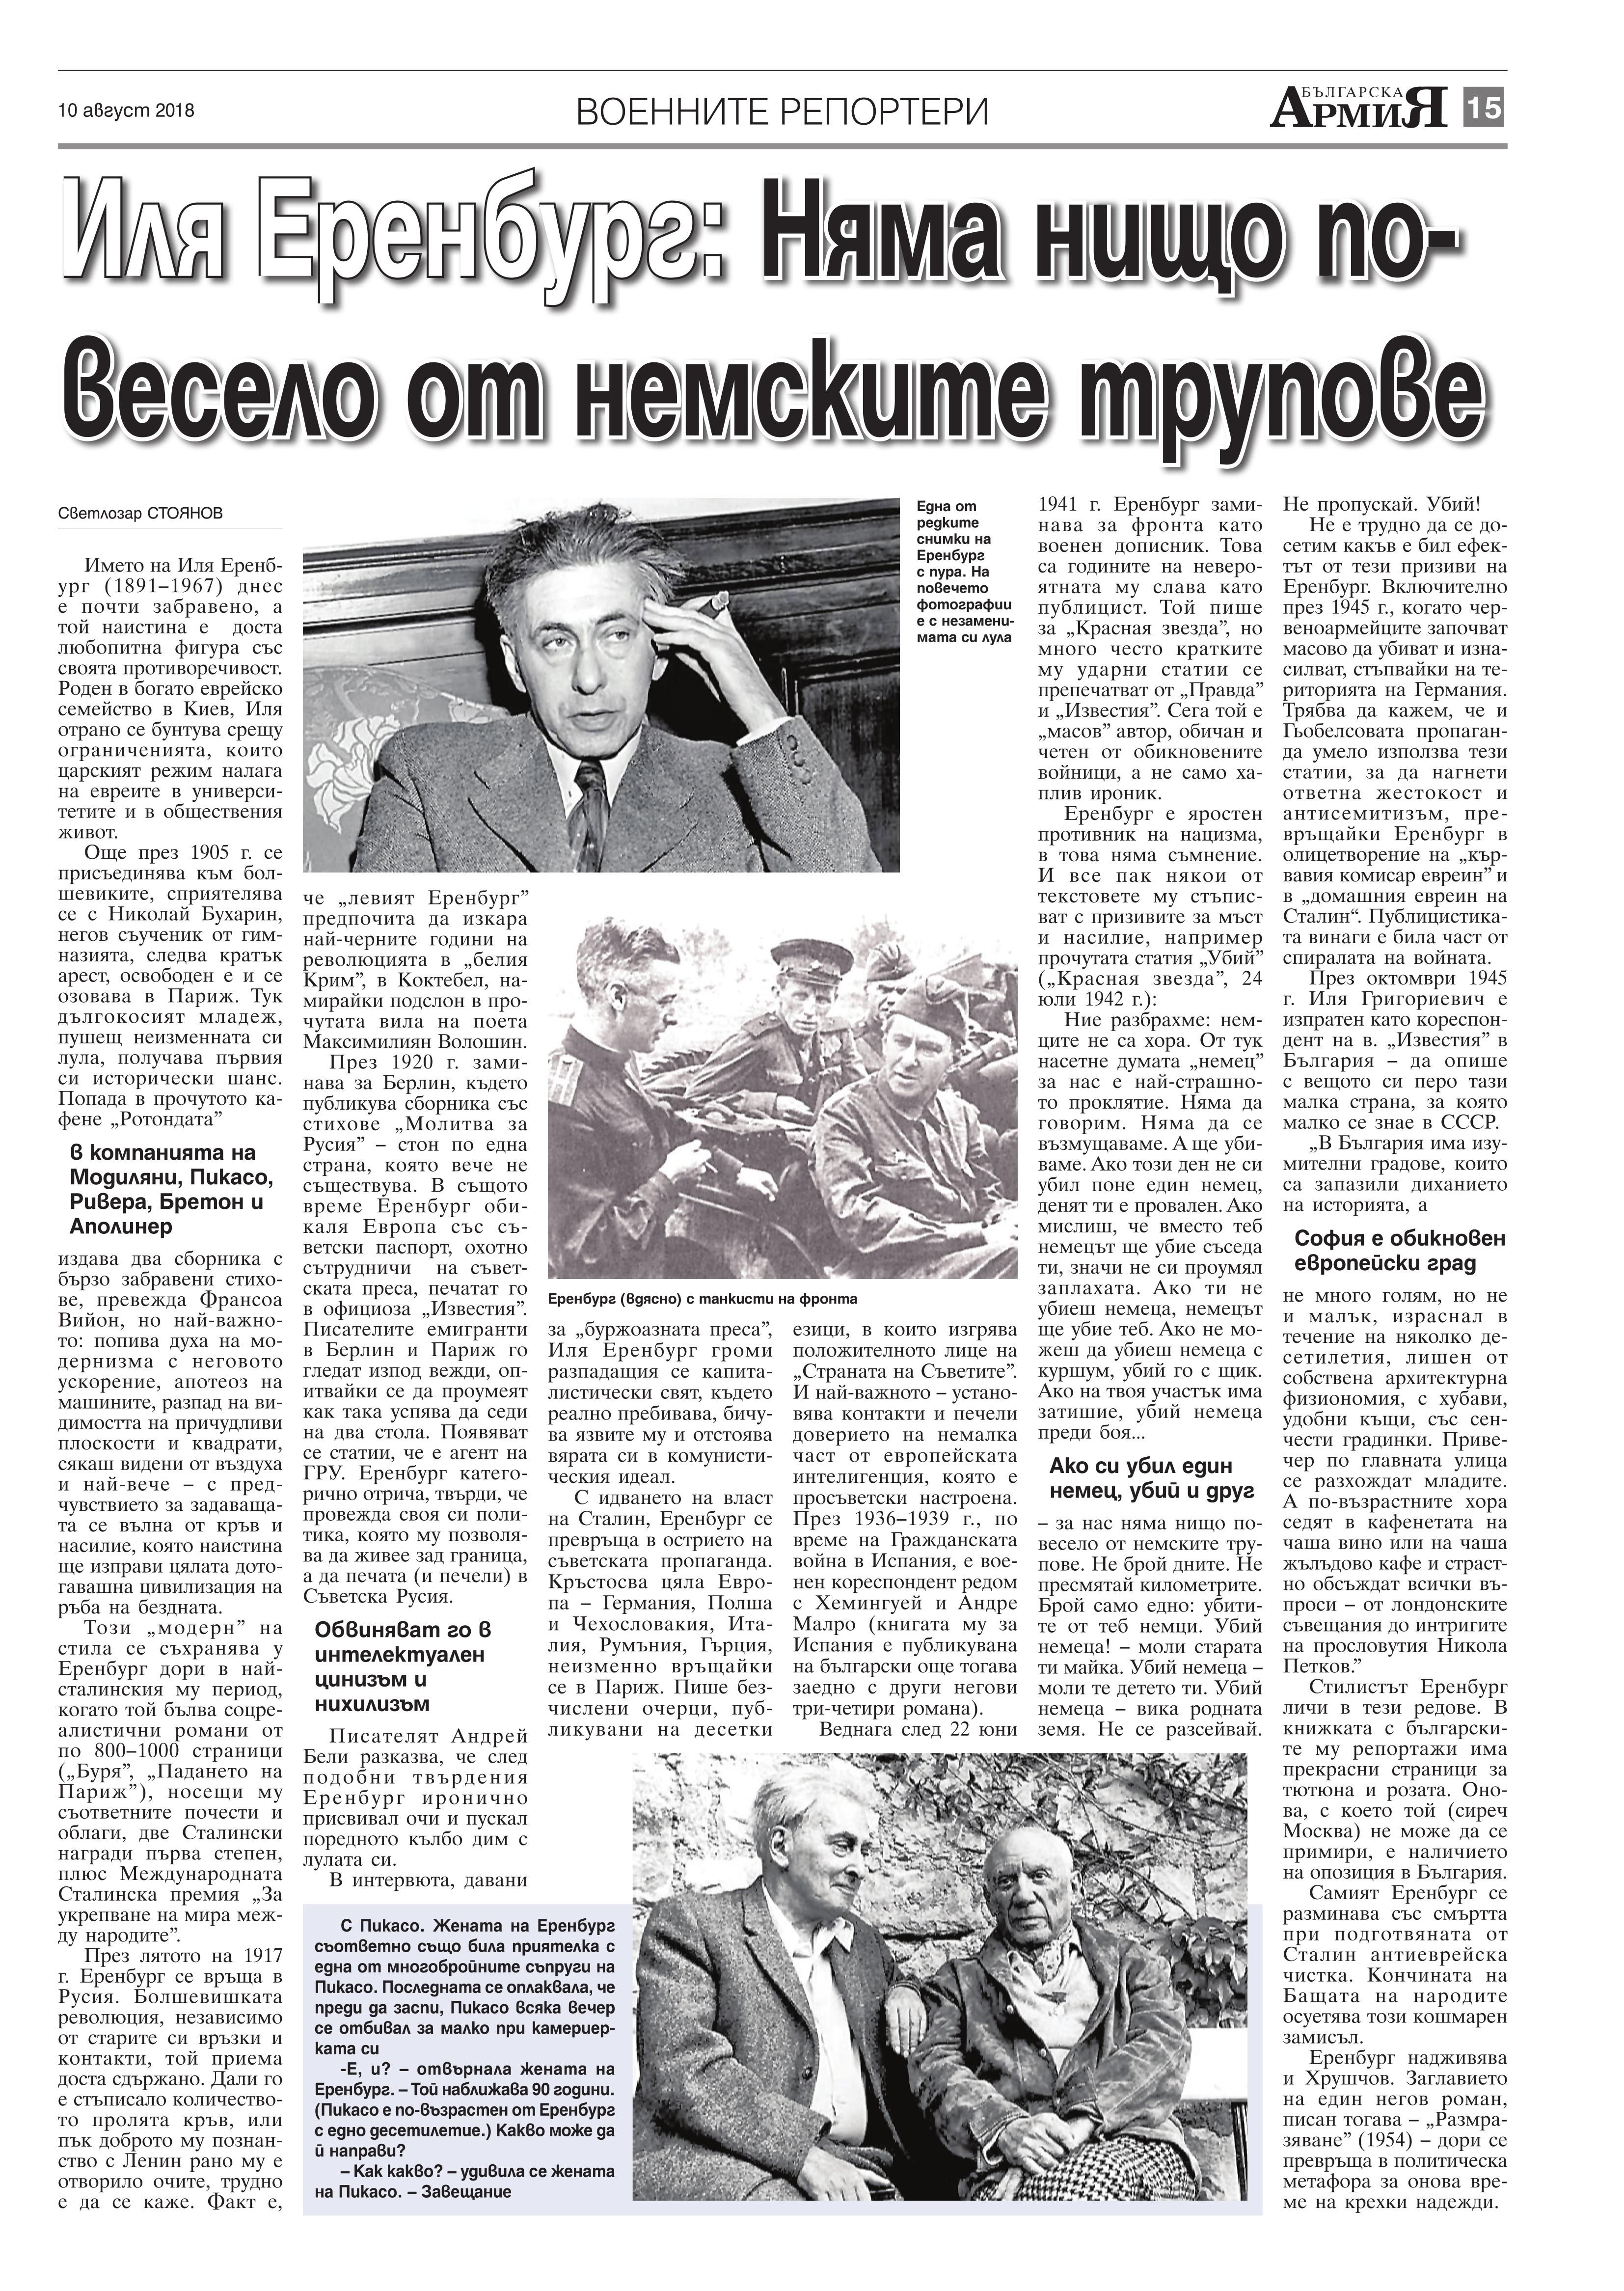 https://armymedia.bg/wp-content/uploads/2015/06/15.page1_-61.jpg